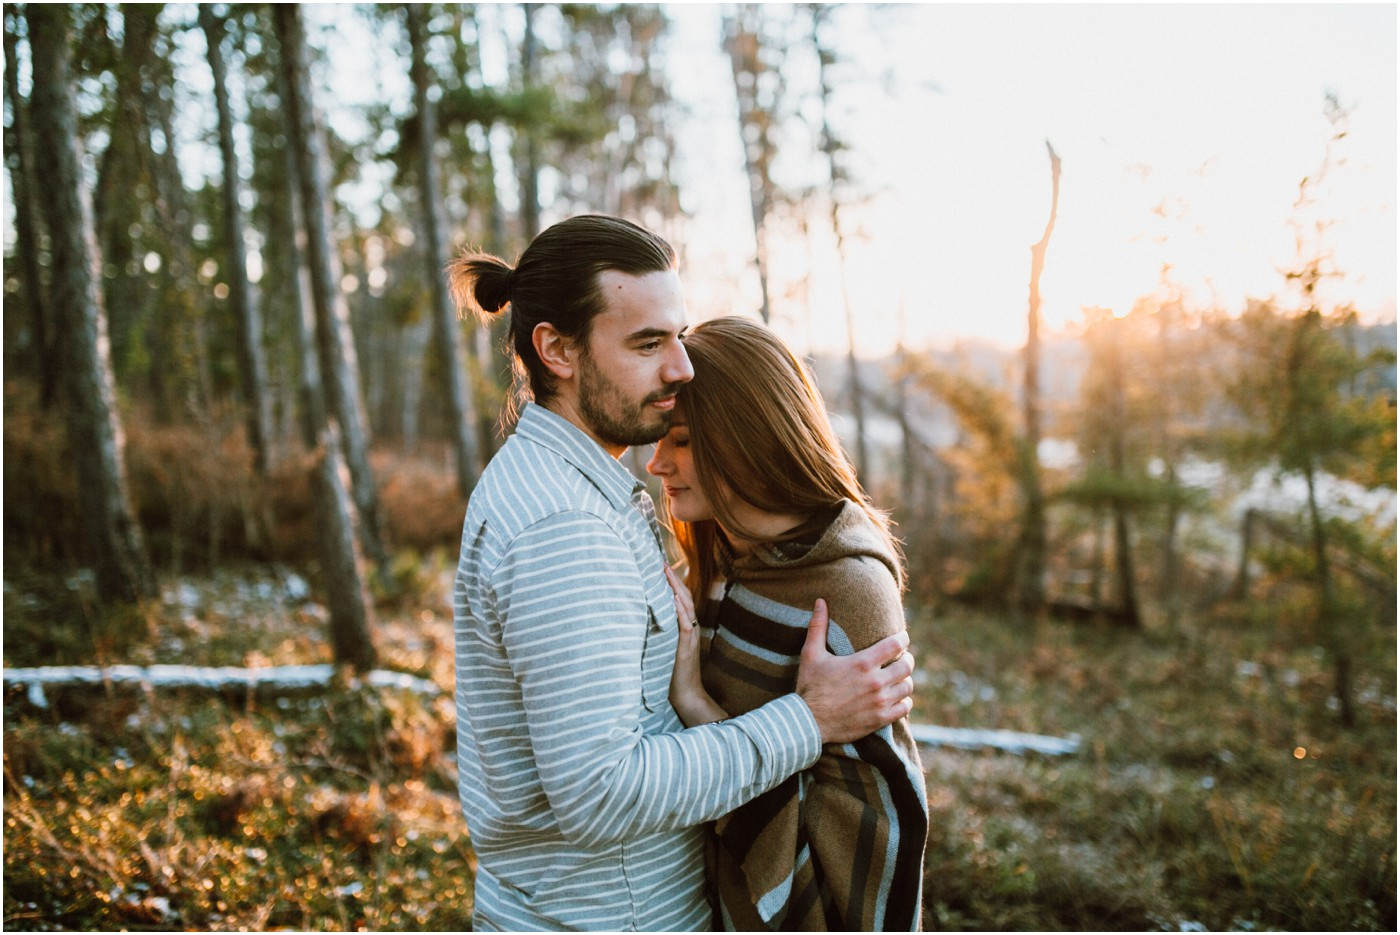 Couple Photo Shoot in the Forest by Ariana Tennyson